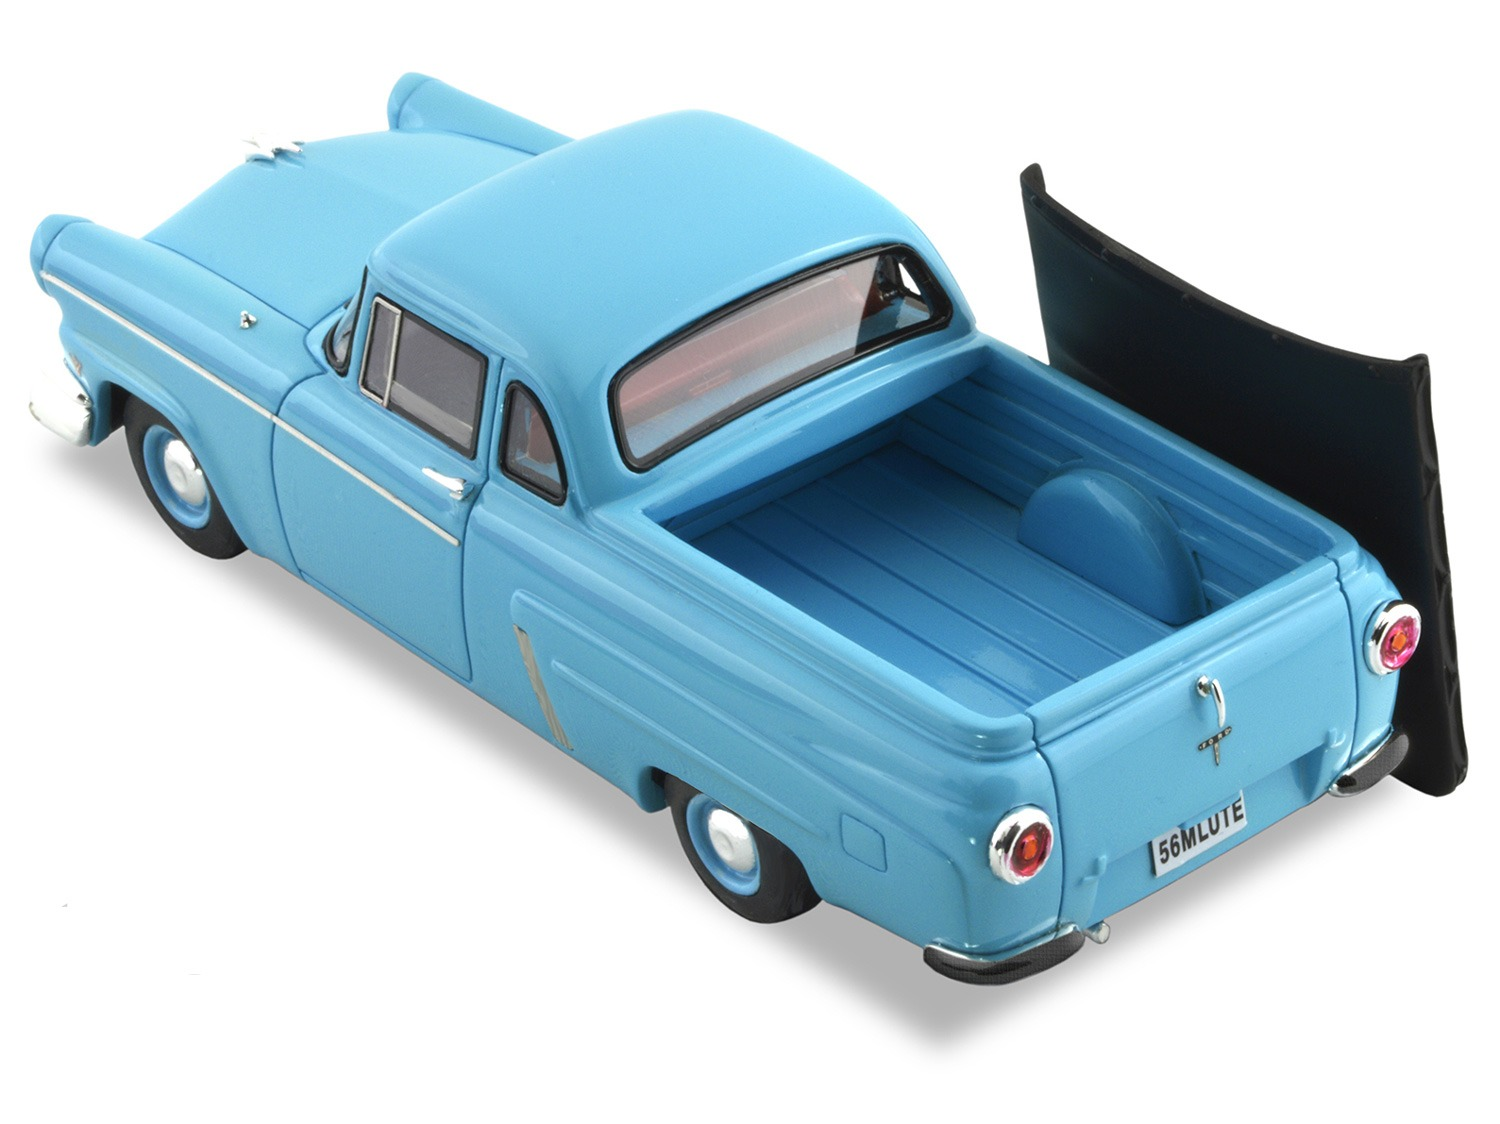 1956 Ford Mainline Ute – Blue